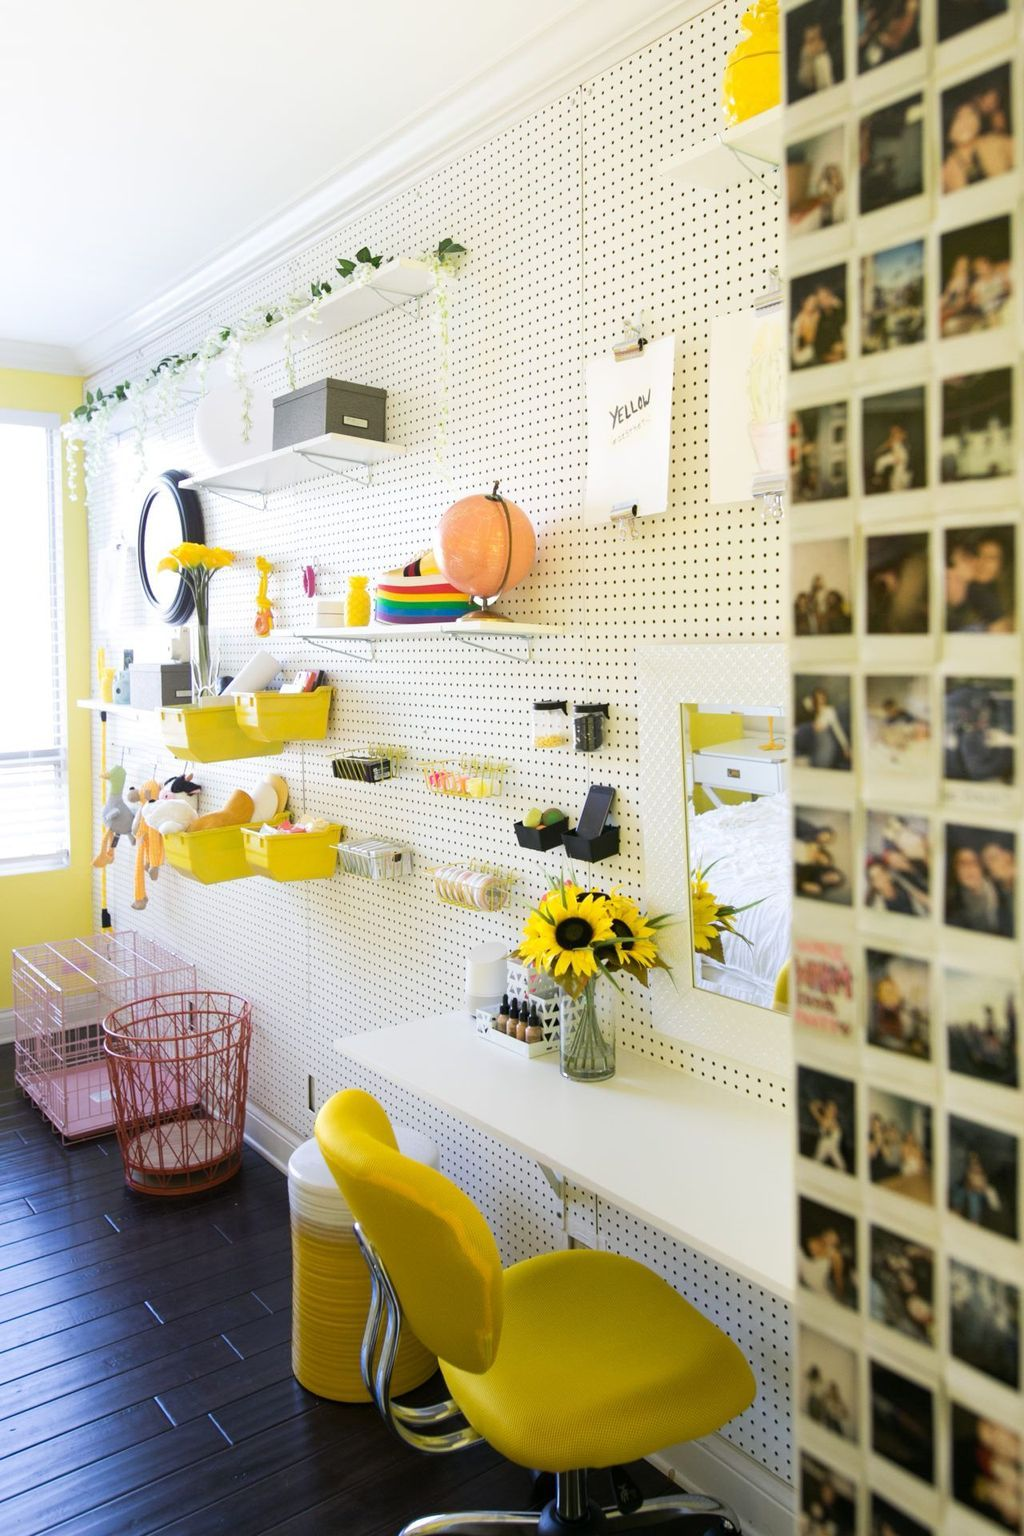 56 Incredible Yellow Aesthetic Room Decor Ideas Based On What Mood You Need To Create In Your Bat Yellow Room Decor Yellow Bedroom Decor Aesthetic Room Decor